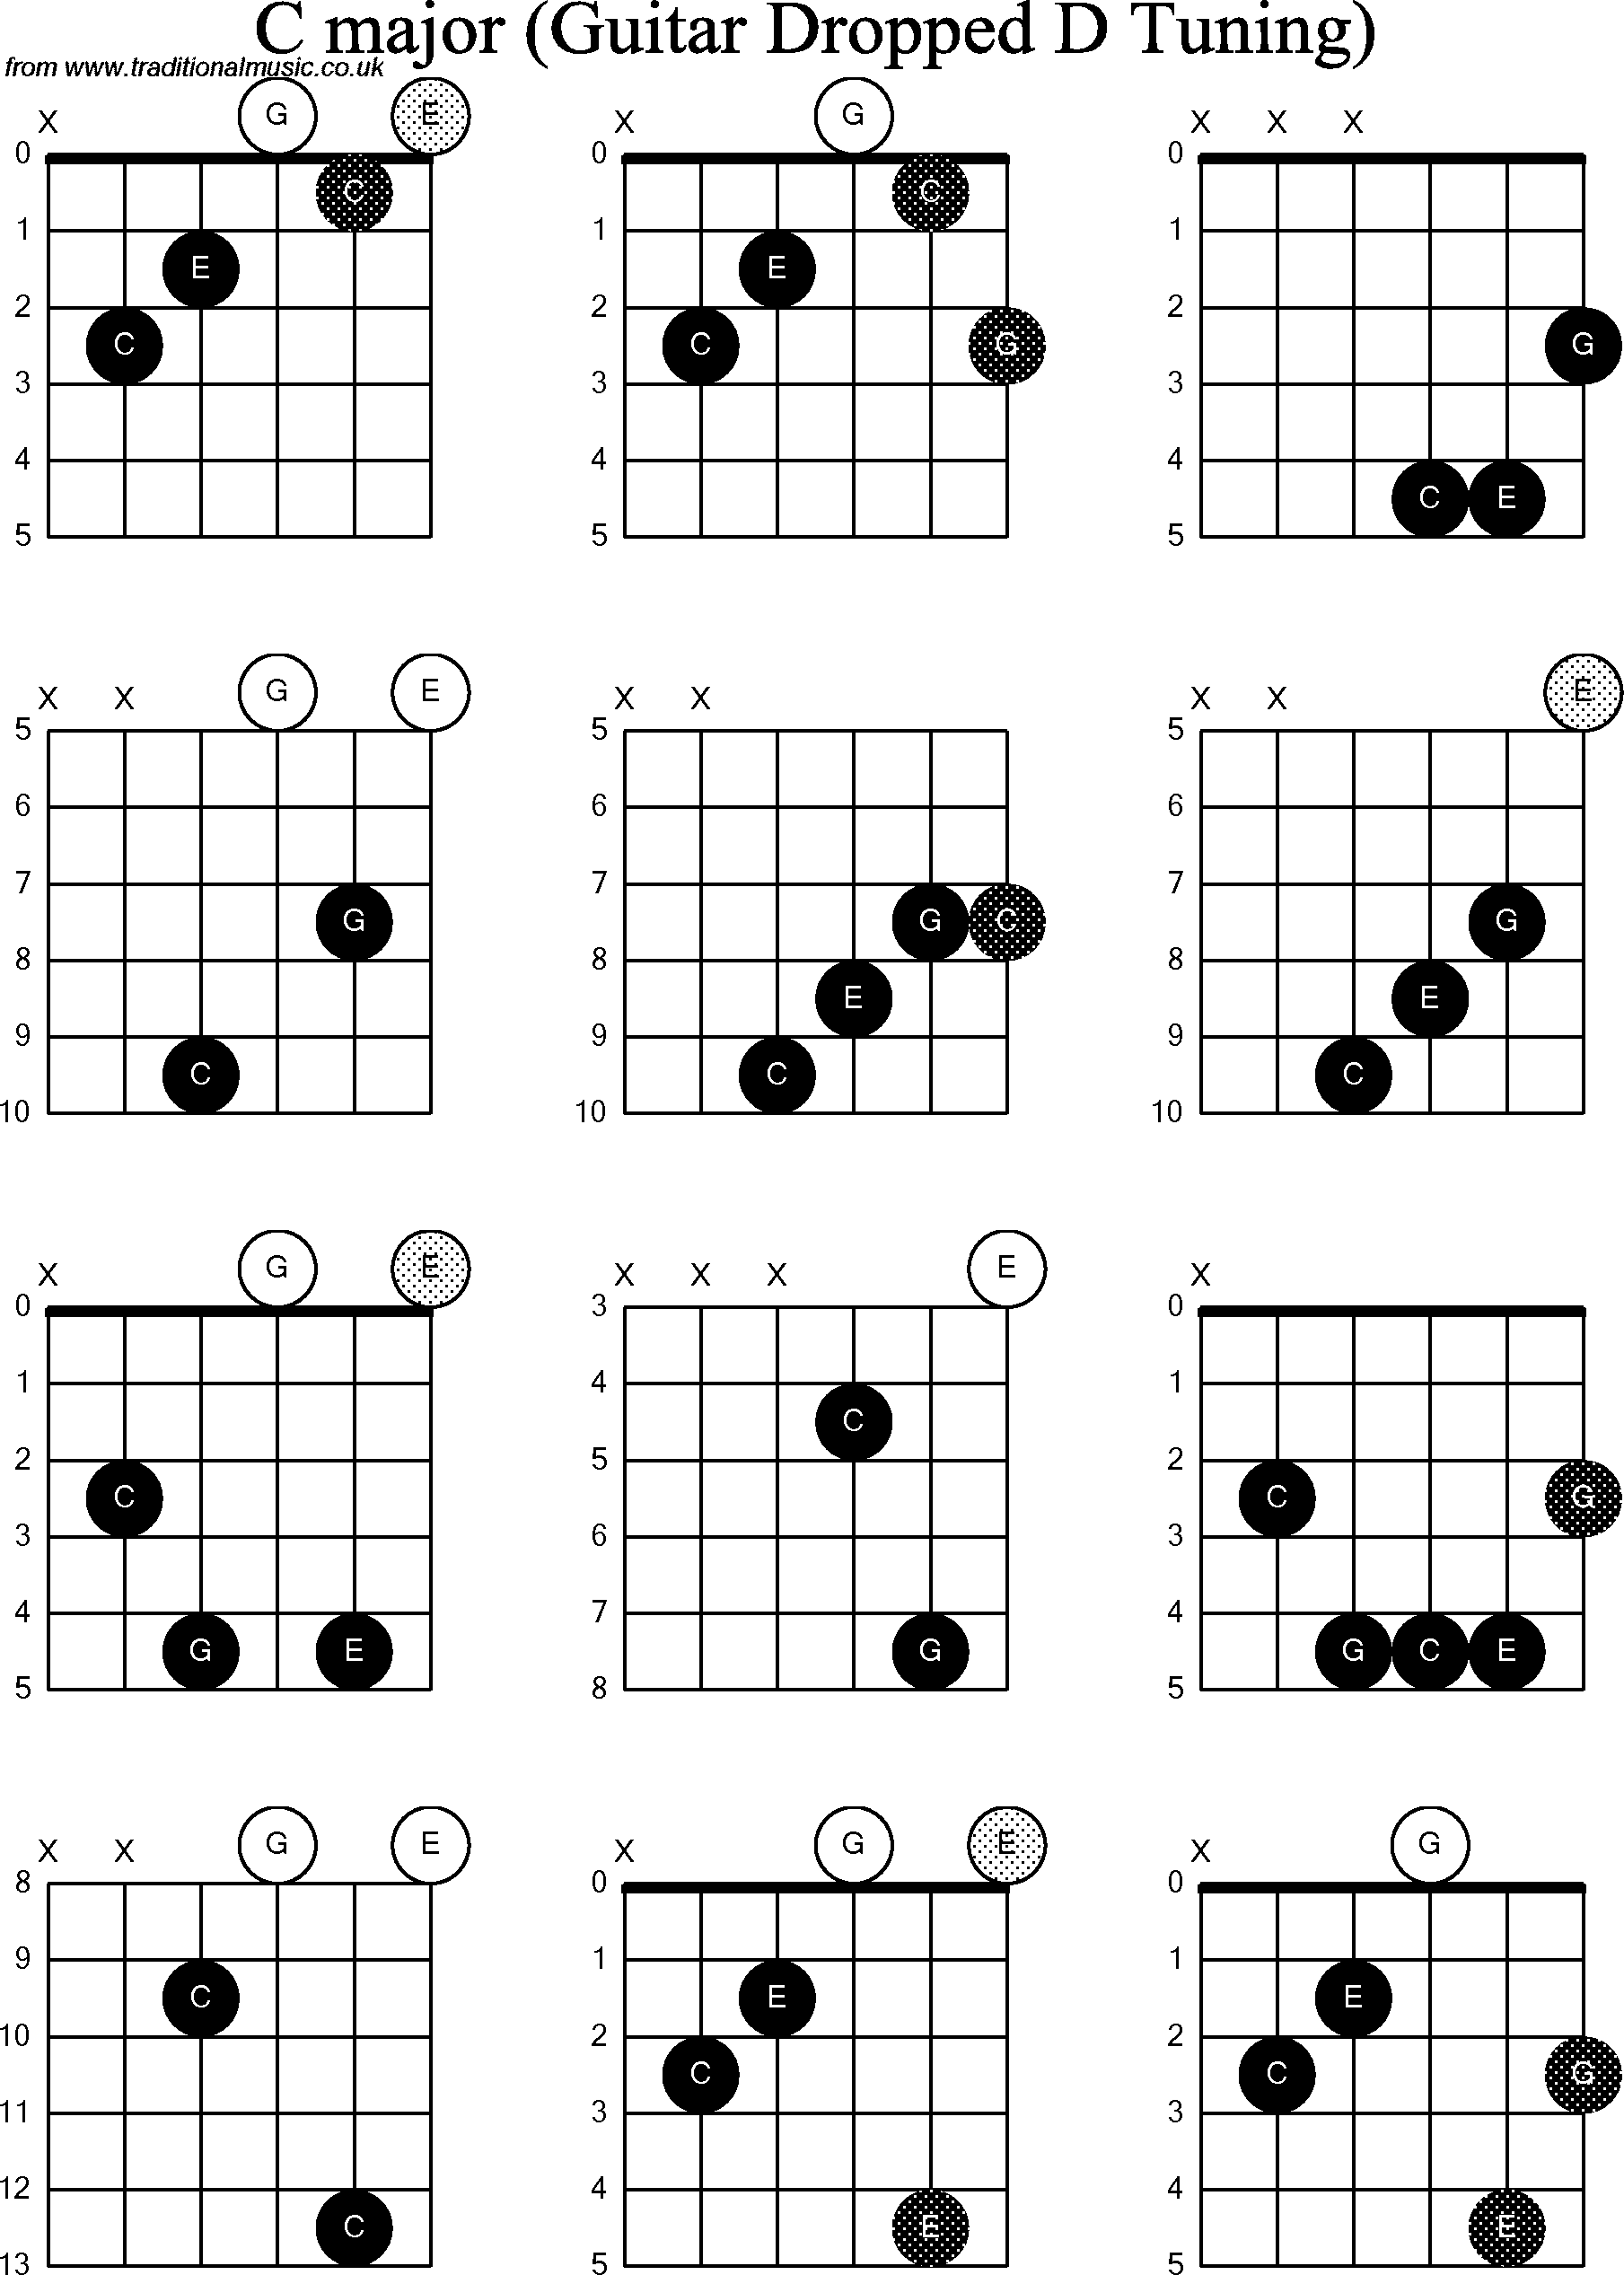 Chord diagrams for dropped d guitardadgbe c chord diagrams for dropped d guitardadgbe c hexwebz Choice Image